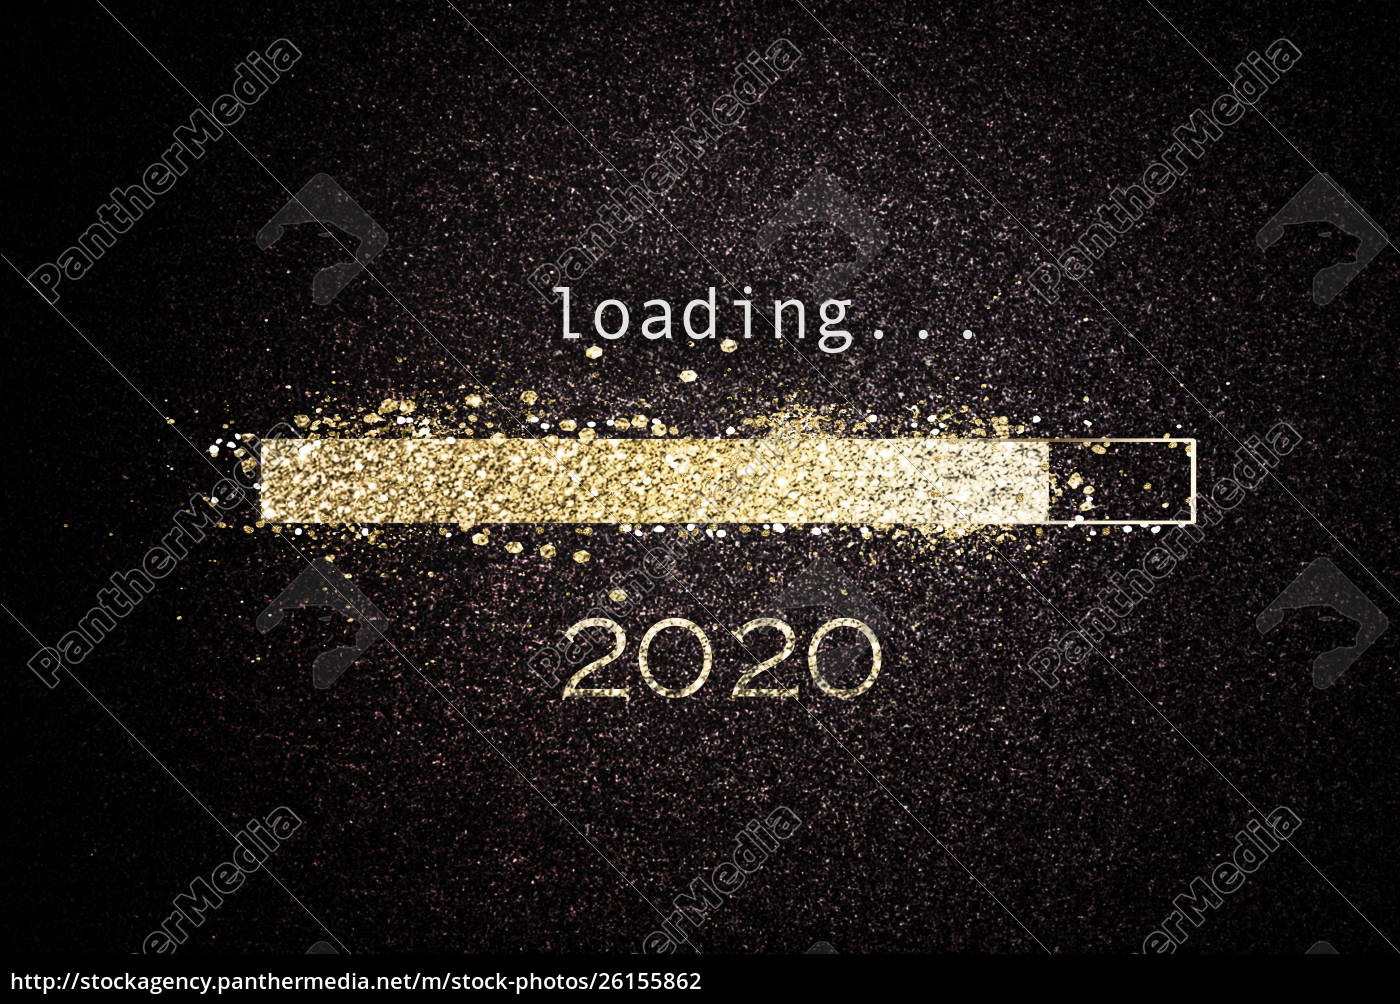 2020 new year background with loading bar stock image 26155862 panthermedia stock agency https stockagency panthermedia net m stock photos 26155862 2020 new year background with loading